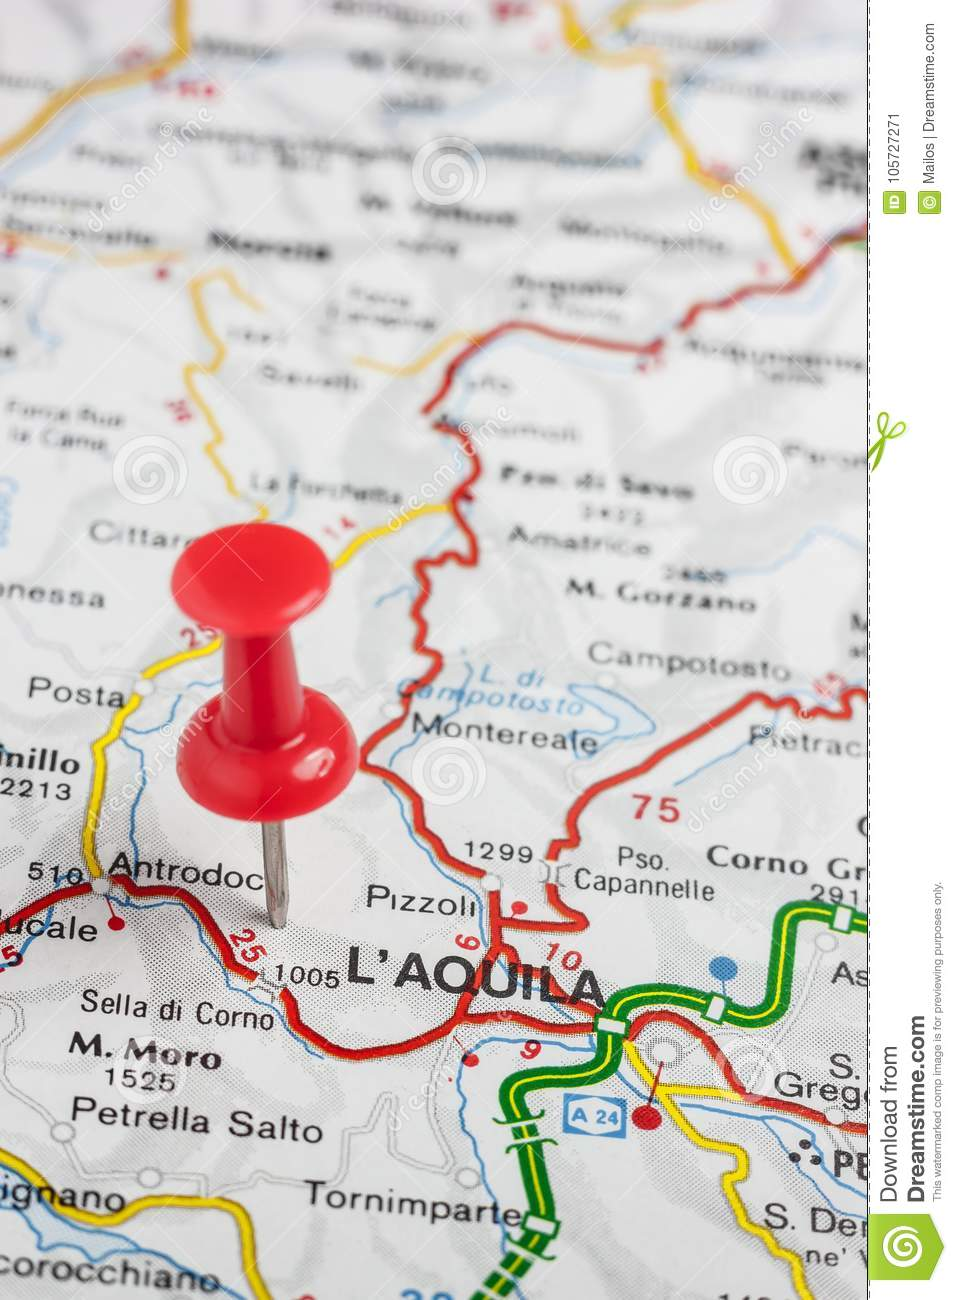 Aquila Italy Map.L X27 Aquila Pinned On A Map Of Italy Stock Image Image Of